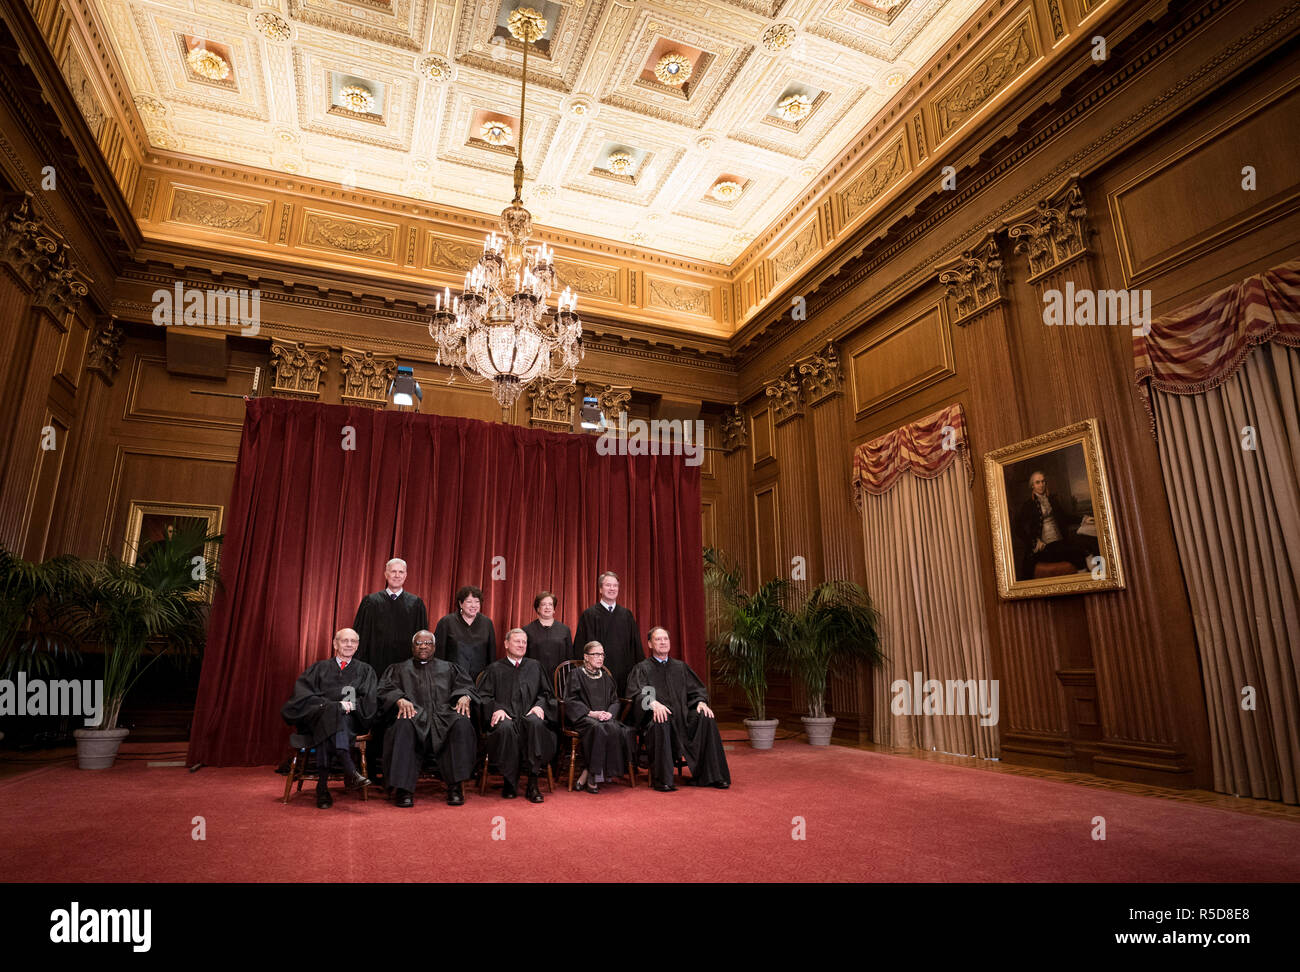 The Supreme Court Justices pose for their official group portrait in the Supreme Court on November 30, 2018 in Washington, DC Seated from left: Associate Justice Stephen Breyer, Associate Justice Clarence Thomas, Chief Justice John G. Roberts, Associate Justice Ruth Bader Ginsburg and Associate Justice Samuel Alito, Jr. Standing behind from left: Associate Justice Neil Gorsuch, Associate Justice Sonia Sotomayor, Associate Justice Elena Kagan and Associate Justice Brett M. Kavanaugh. Credit: Kevin Dietsch/Pool via CNP | usage worldwide - Stock Image